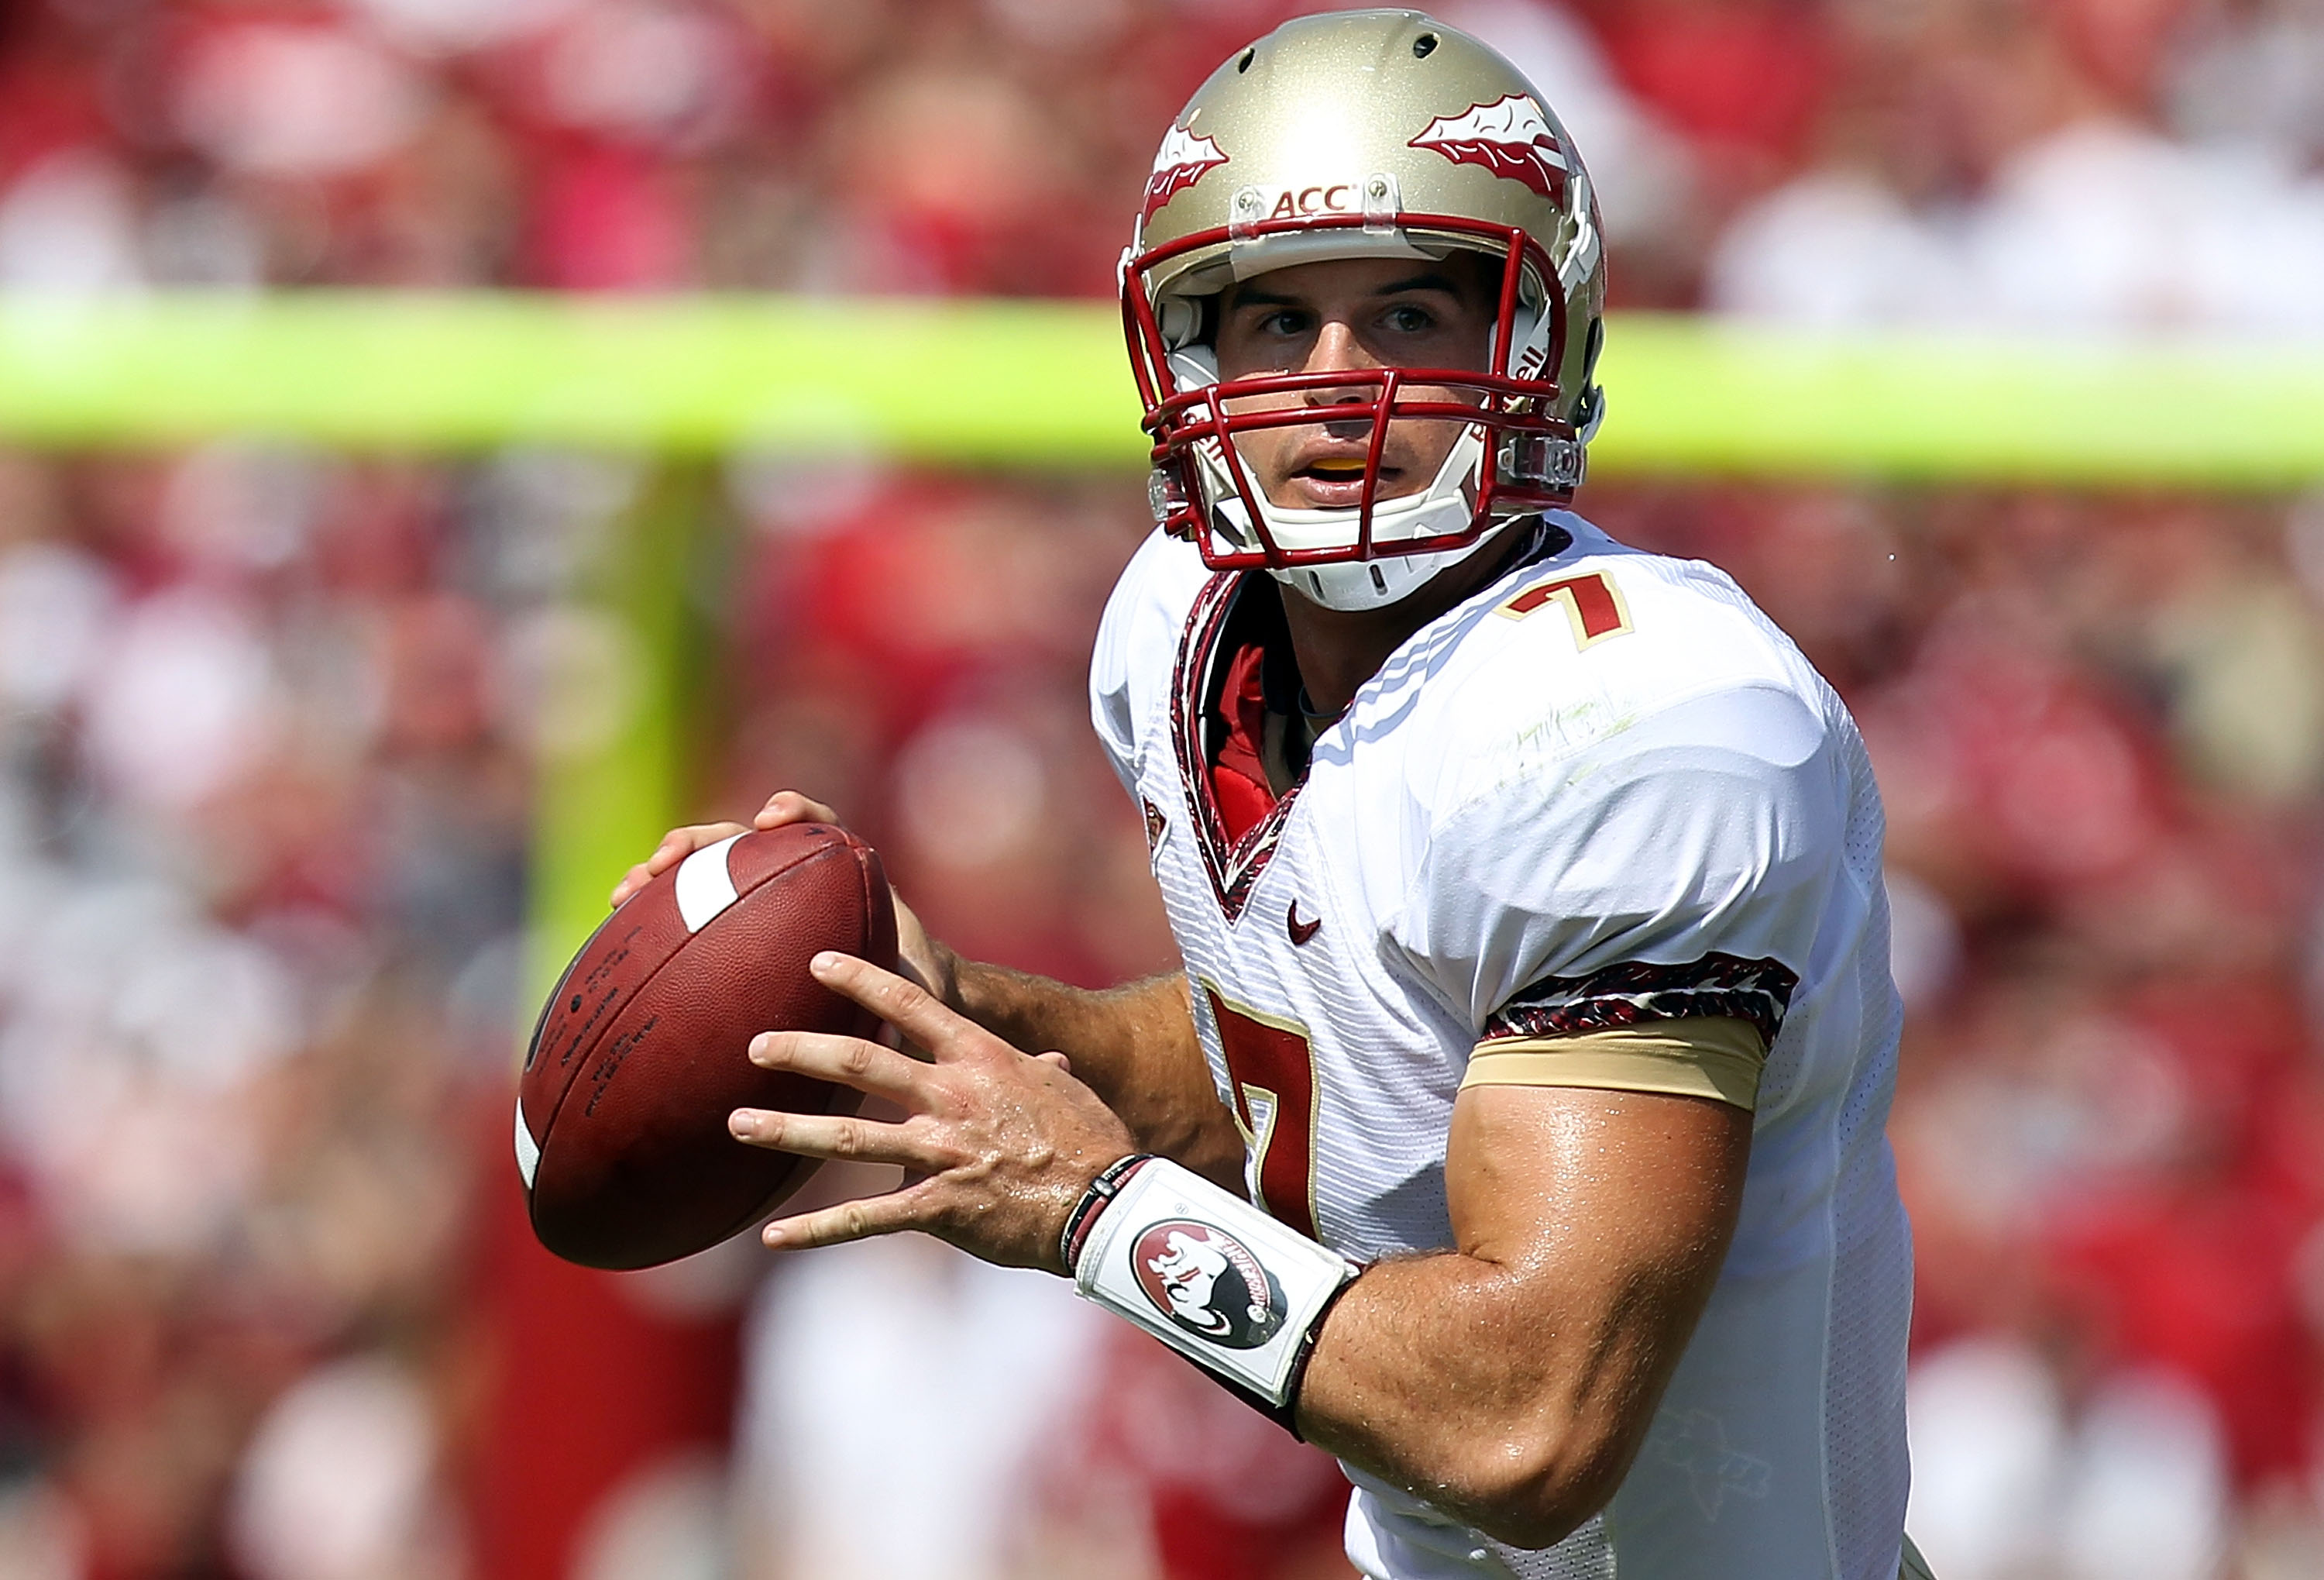 NORMAN, OK - SEPTEMBER 11:  Quarterback Christian Ponder #7 of the Florida State Seminoles drops back to pass against the Oklahoma Sooners at Gaylord Family Oklahoma Memorial Stadium on September 11, 2010 in Norman, Oklahoma.  (Photo by Ronald Martinez/Ge